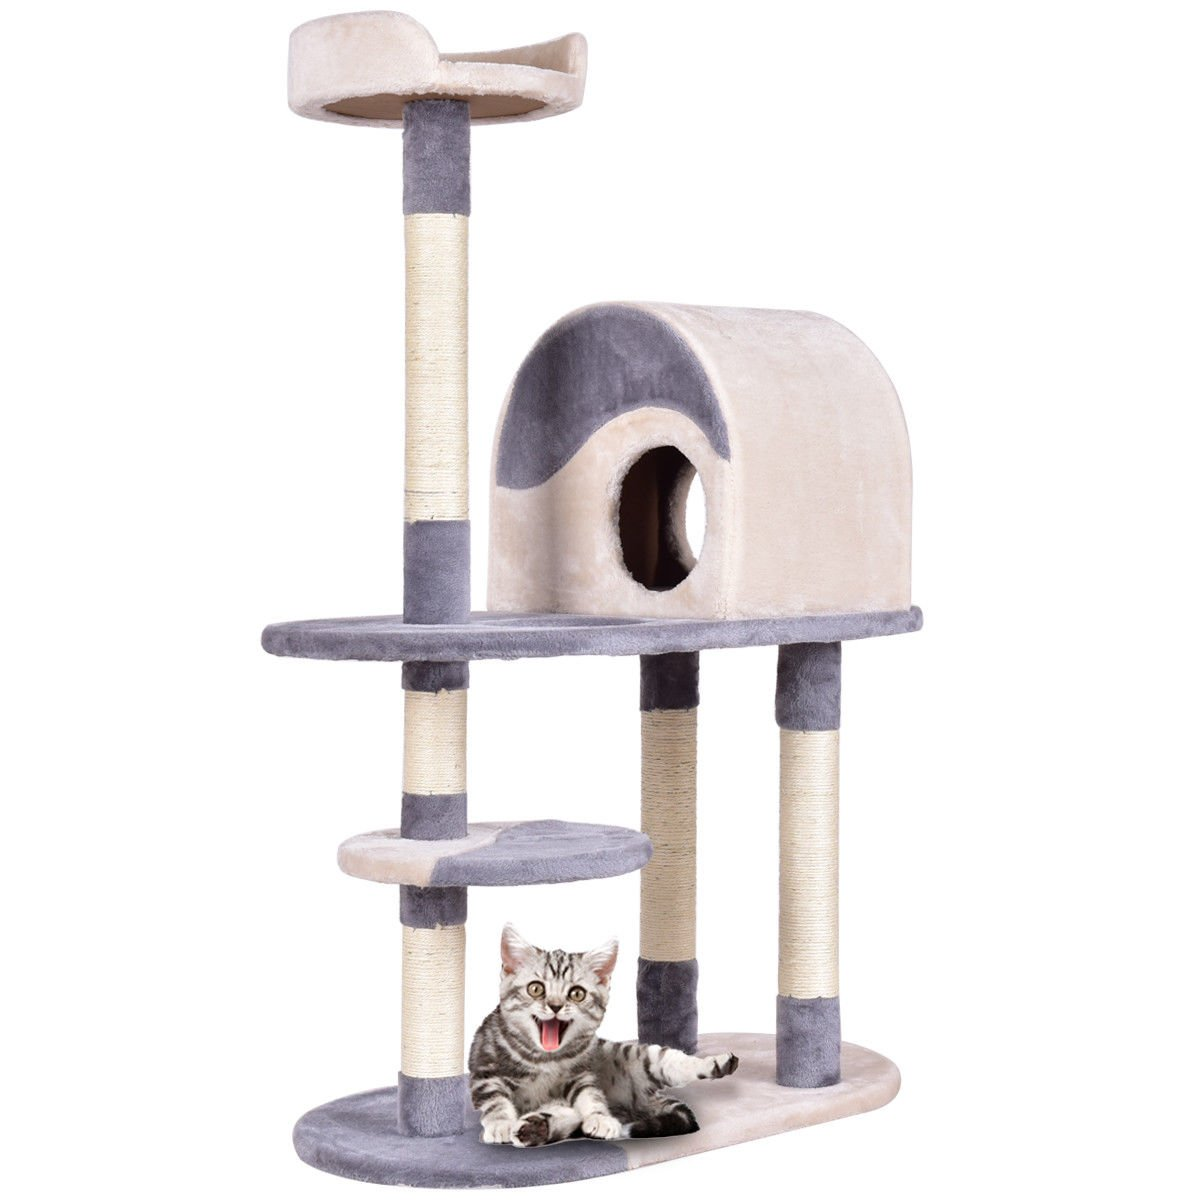 TANGKULA 48'' Cat Tree Cat Tower with Perches Scratching Posts Kitten Activity Tower Condo (Beige+Gray)